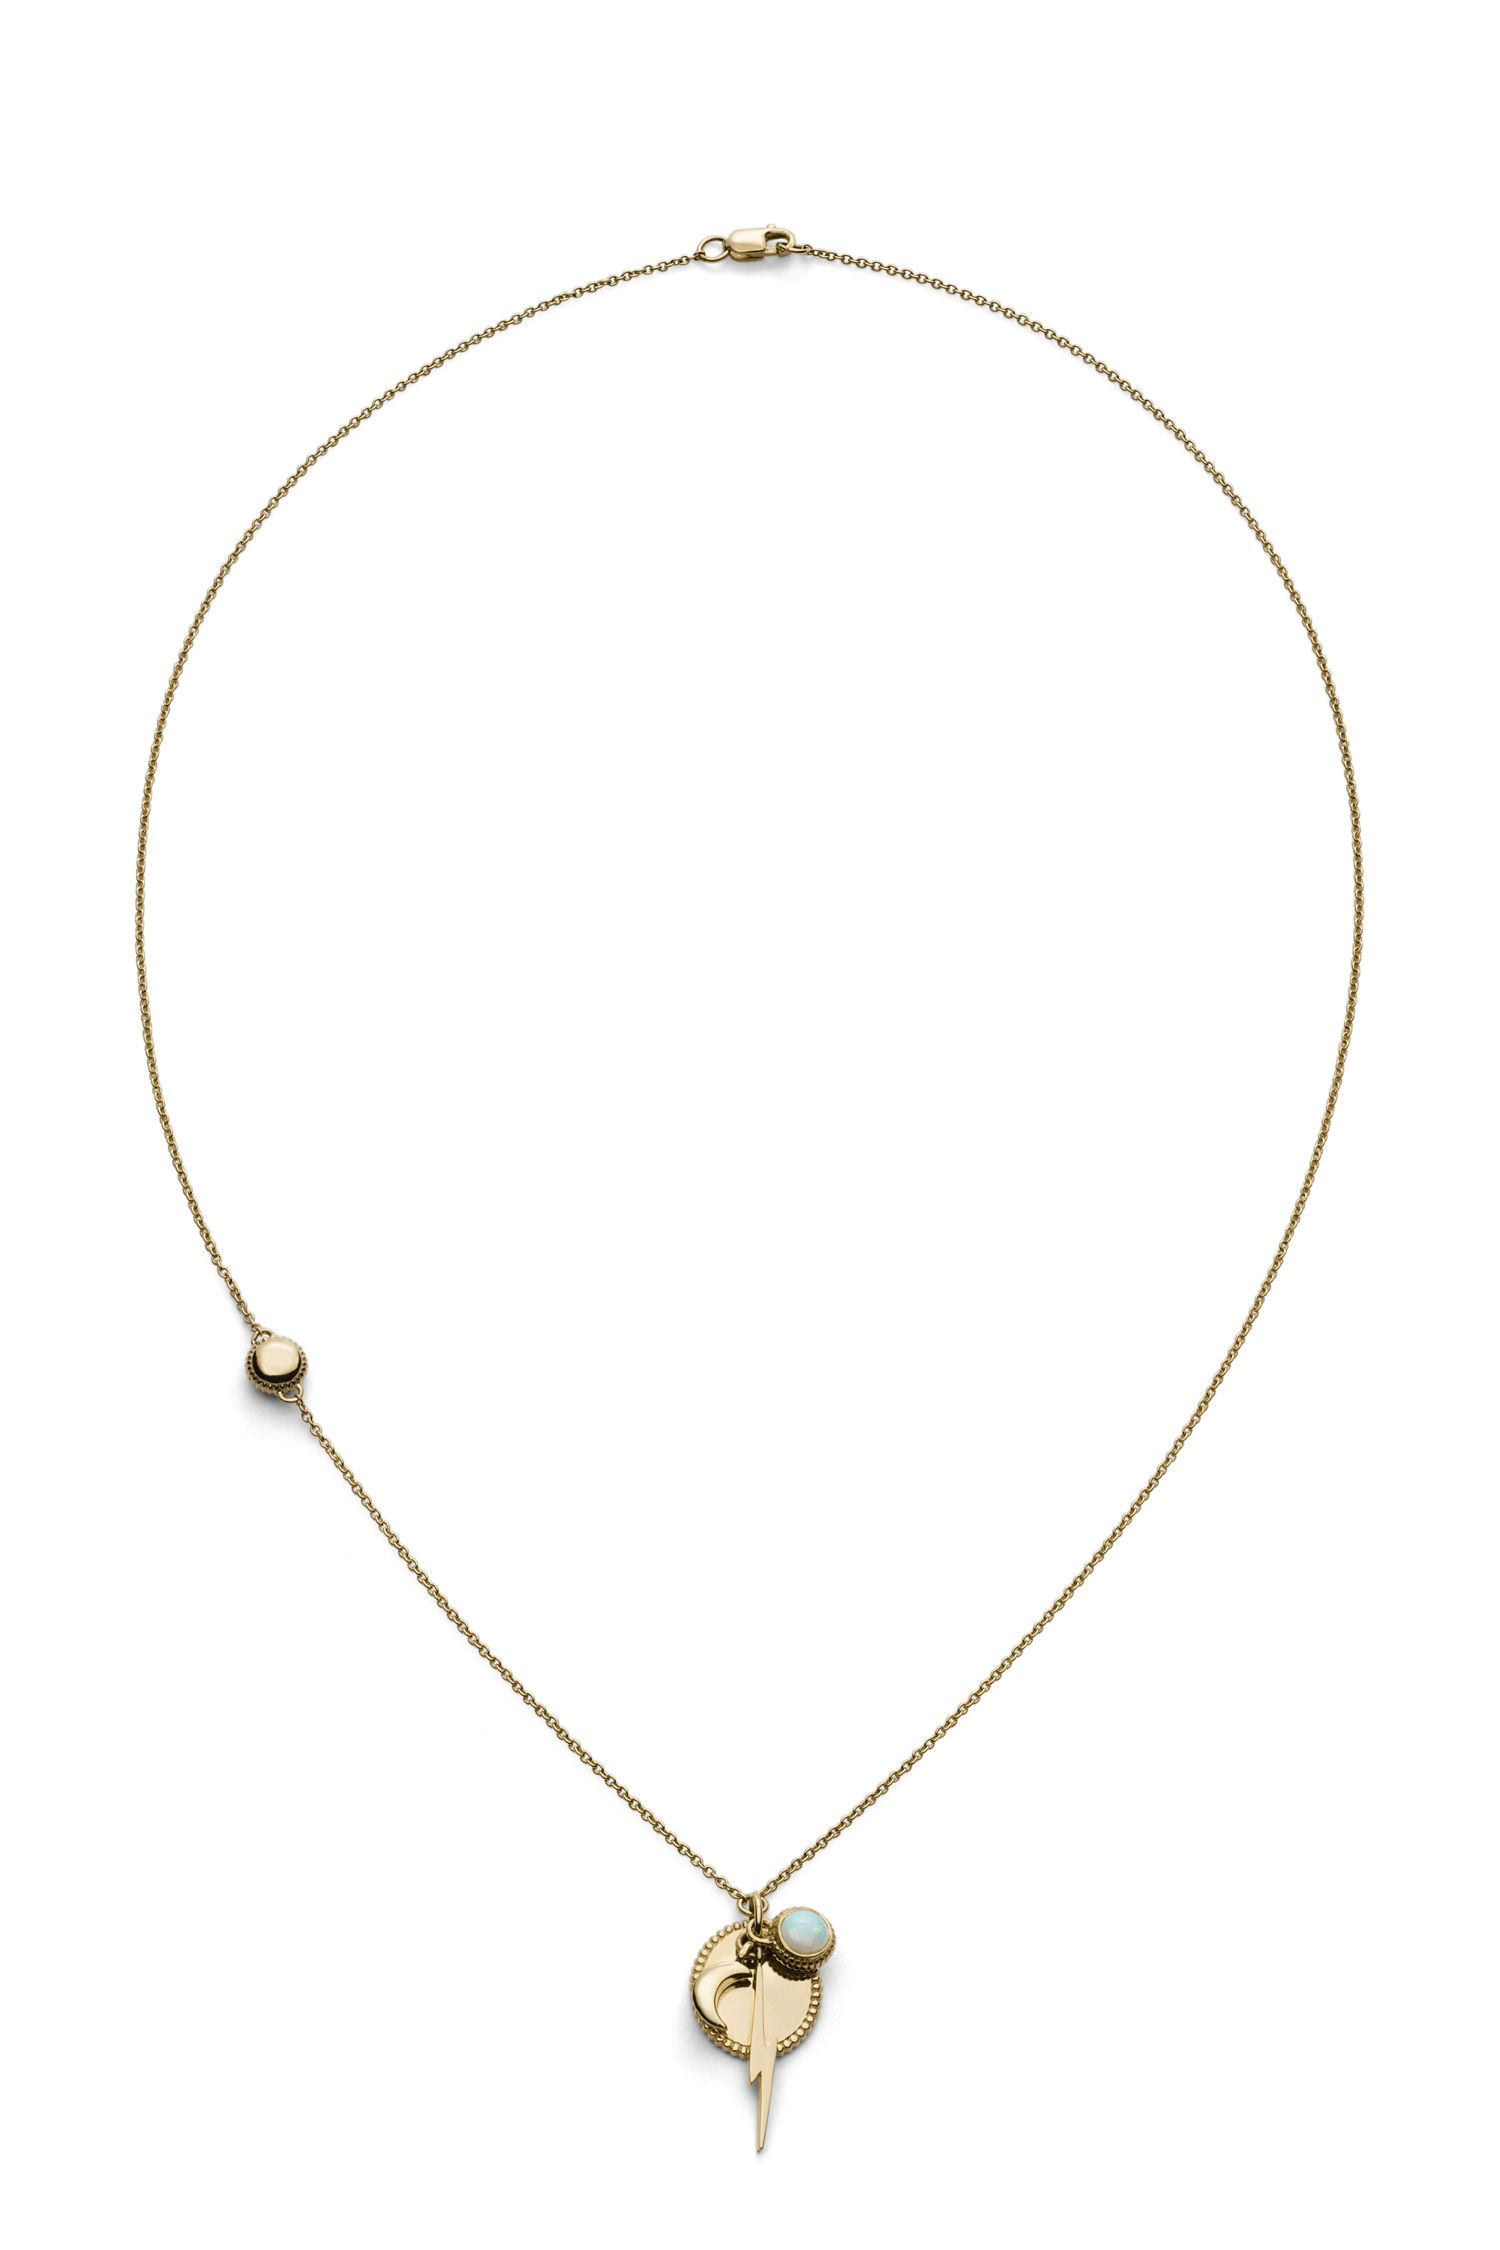 "<p>Perfect for the friend who loves feminine touches, this delicate necklace is ideal for daily wear.</p>  <p><em data-verified=""redactor"" data-redactor-tag=""em"">Shinola Bolt Cluster Necklace, $390; <a href=""https://www.shinola.com/bolt-cluster-necklace-sterling-silver.html"" target=""_blank"" data-tracking-id=""recirc-text-link"">shinola.com</a></em></p>"